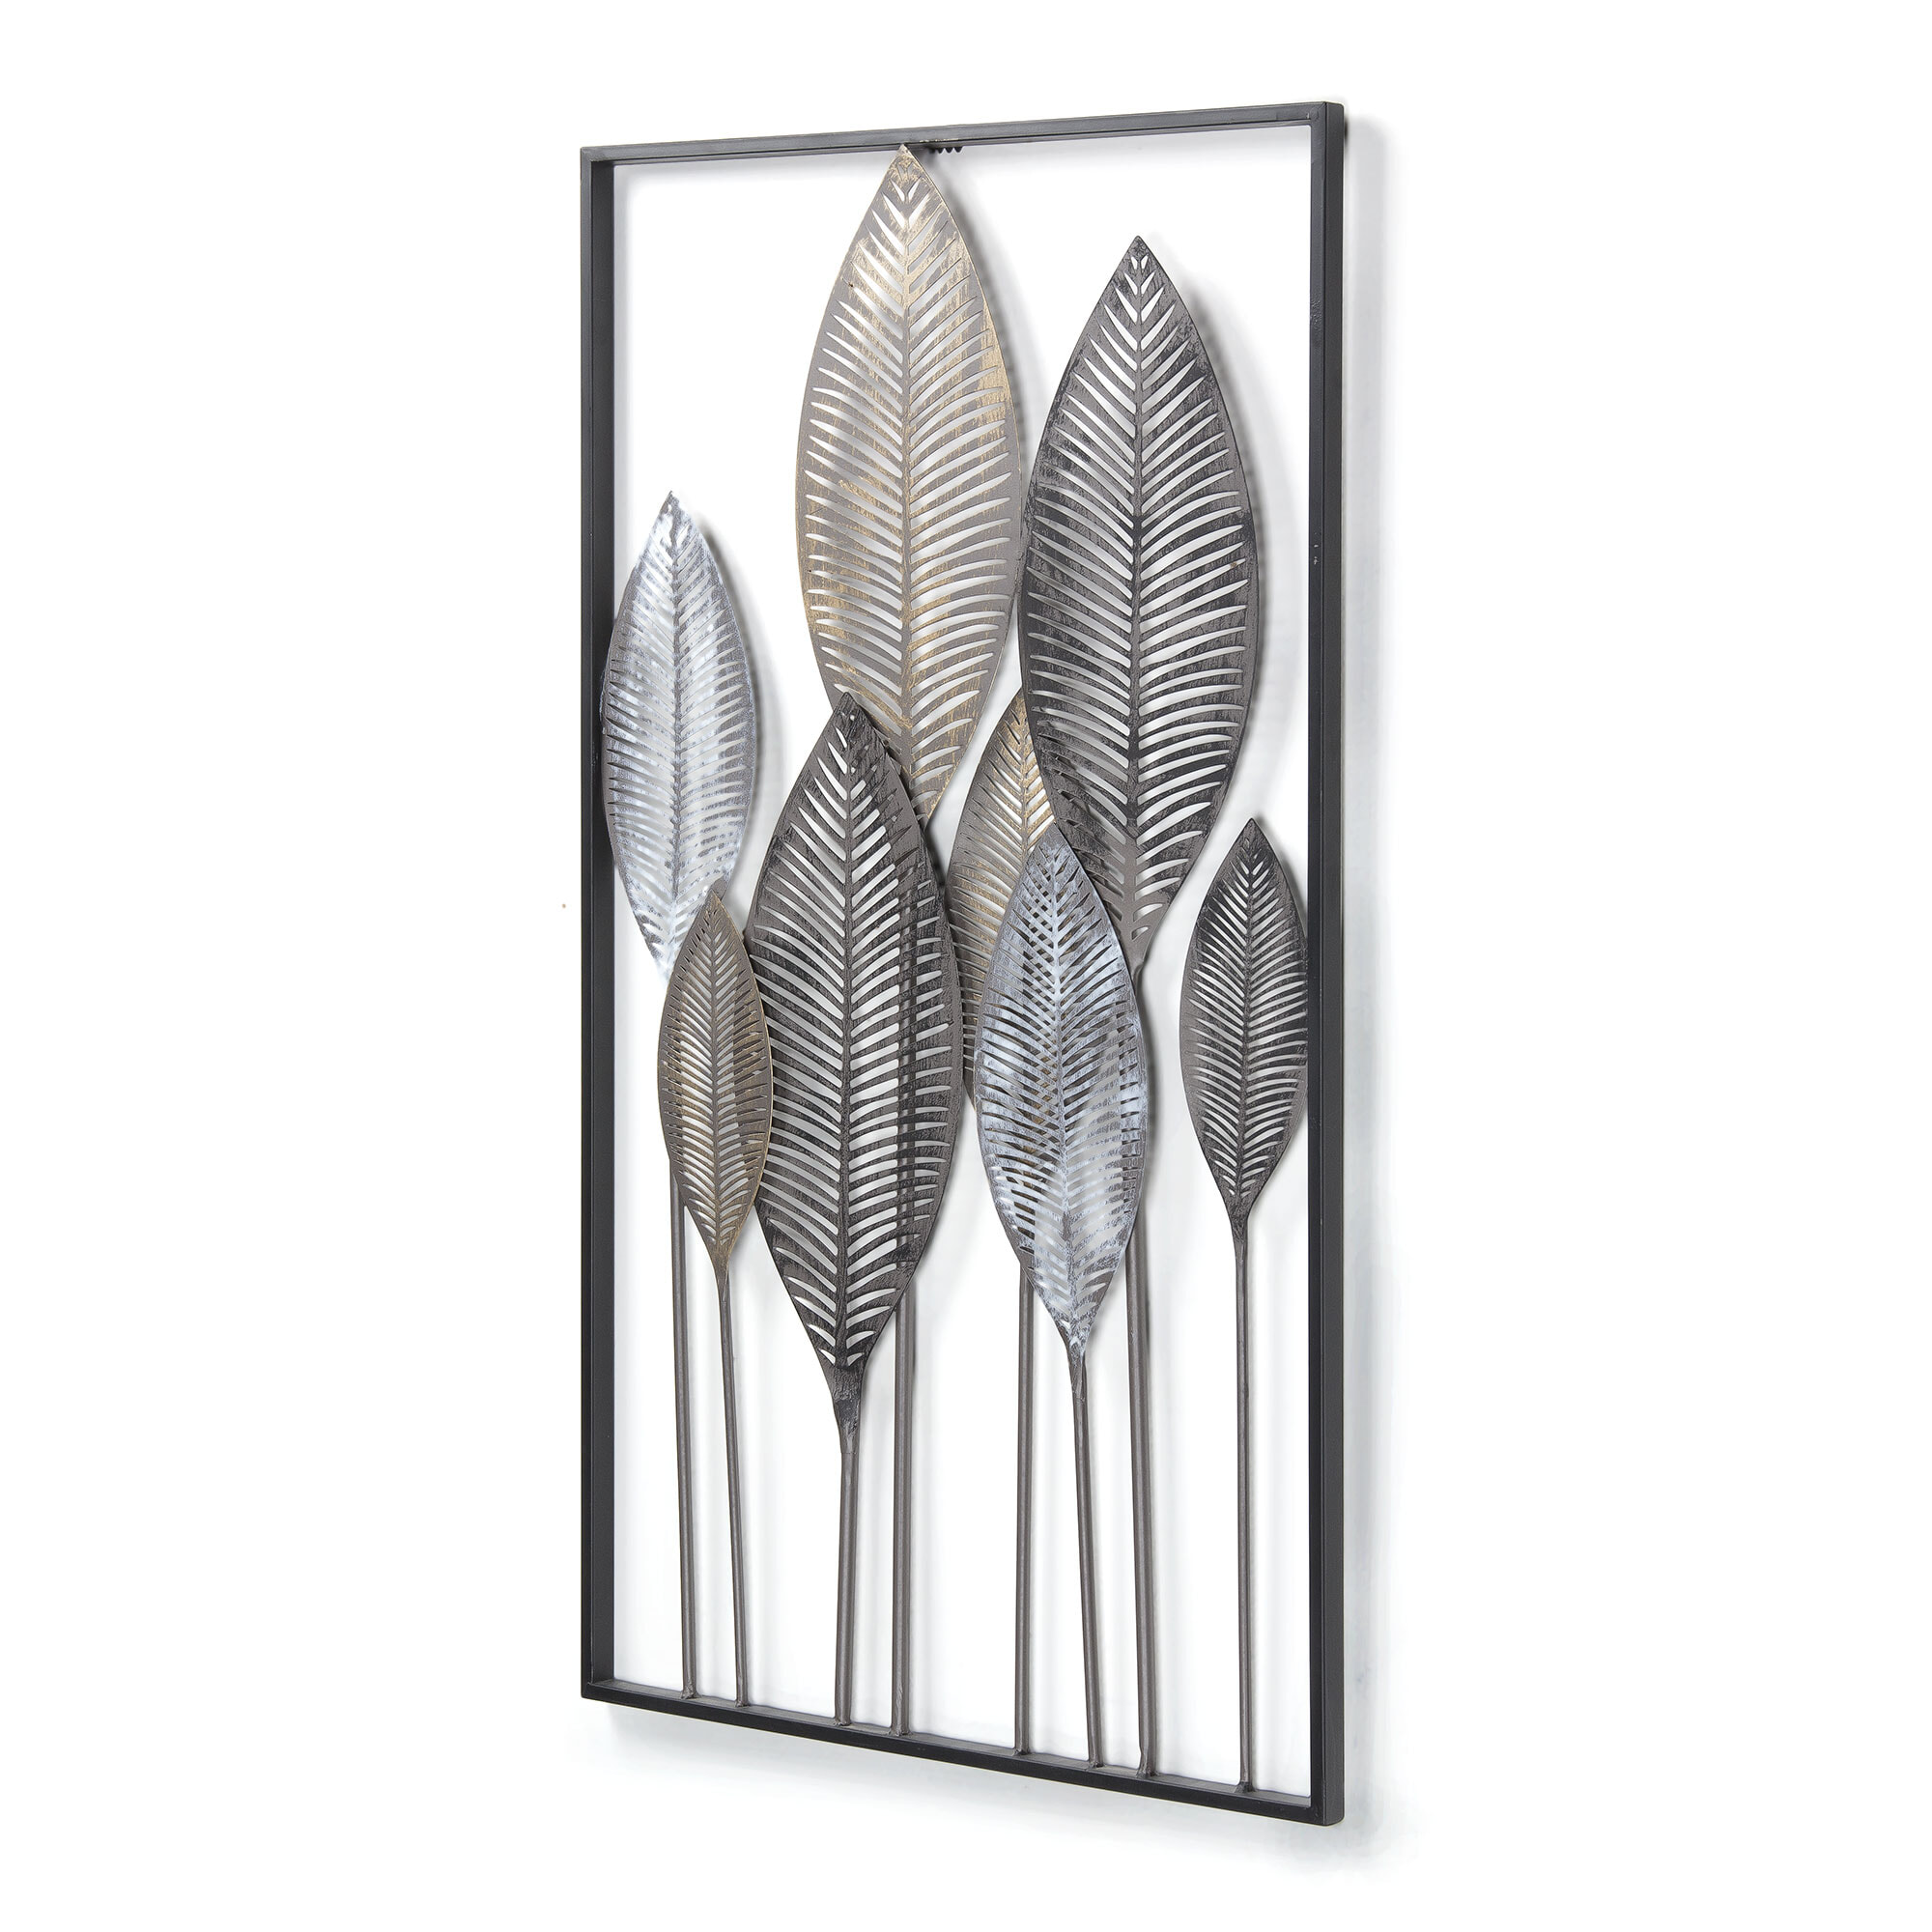 Kave Home Wandpaneel 'Leaves' 95 x 52cm | Kave Home